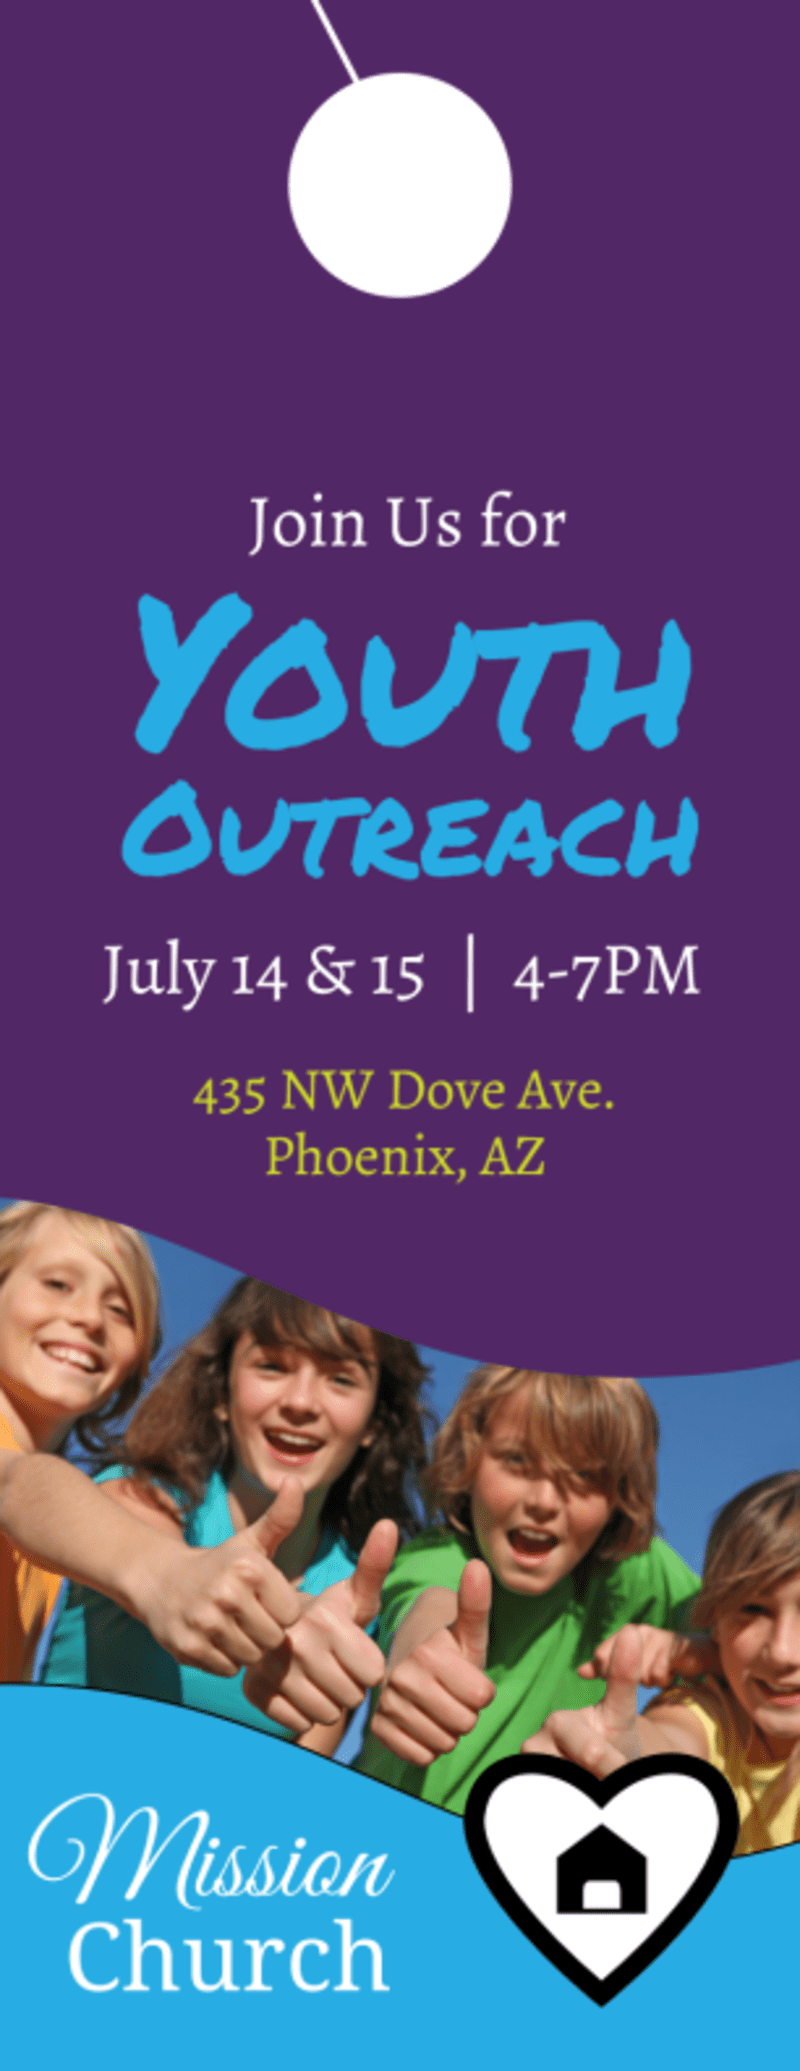 Church Youth Outreach Door Hanger Template Preview 2